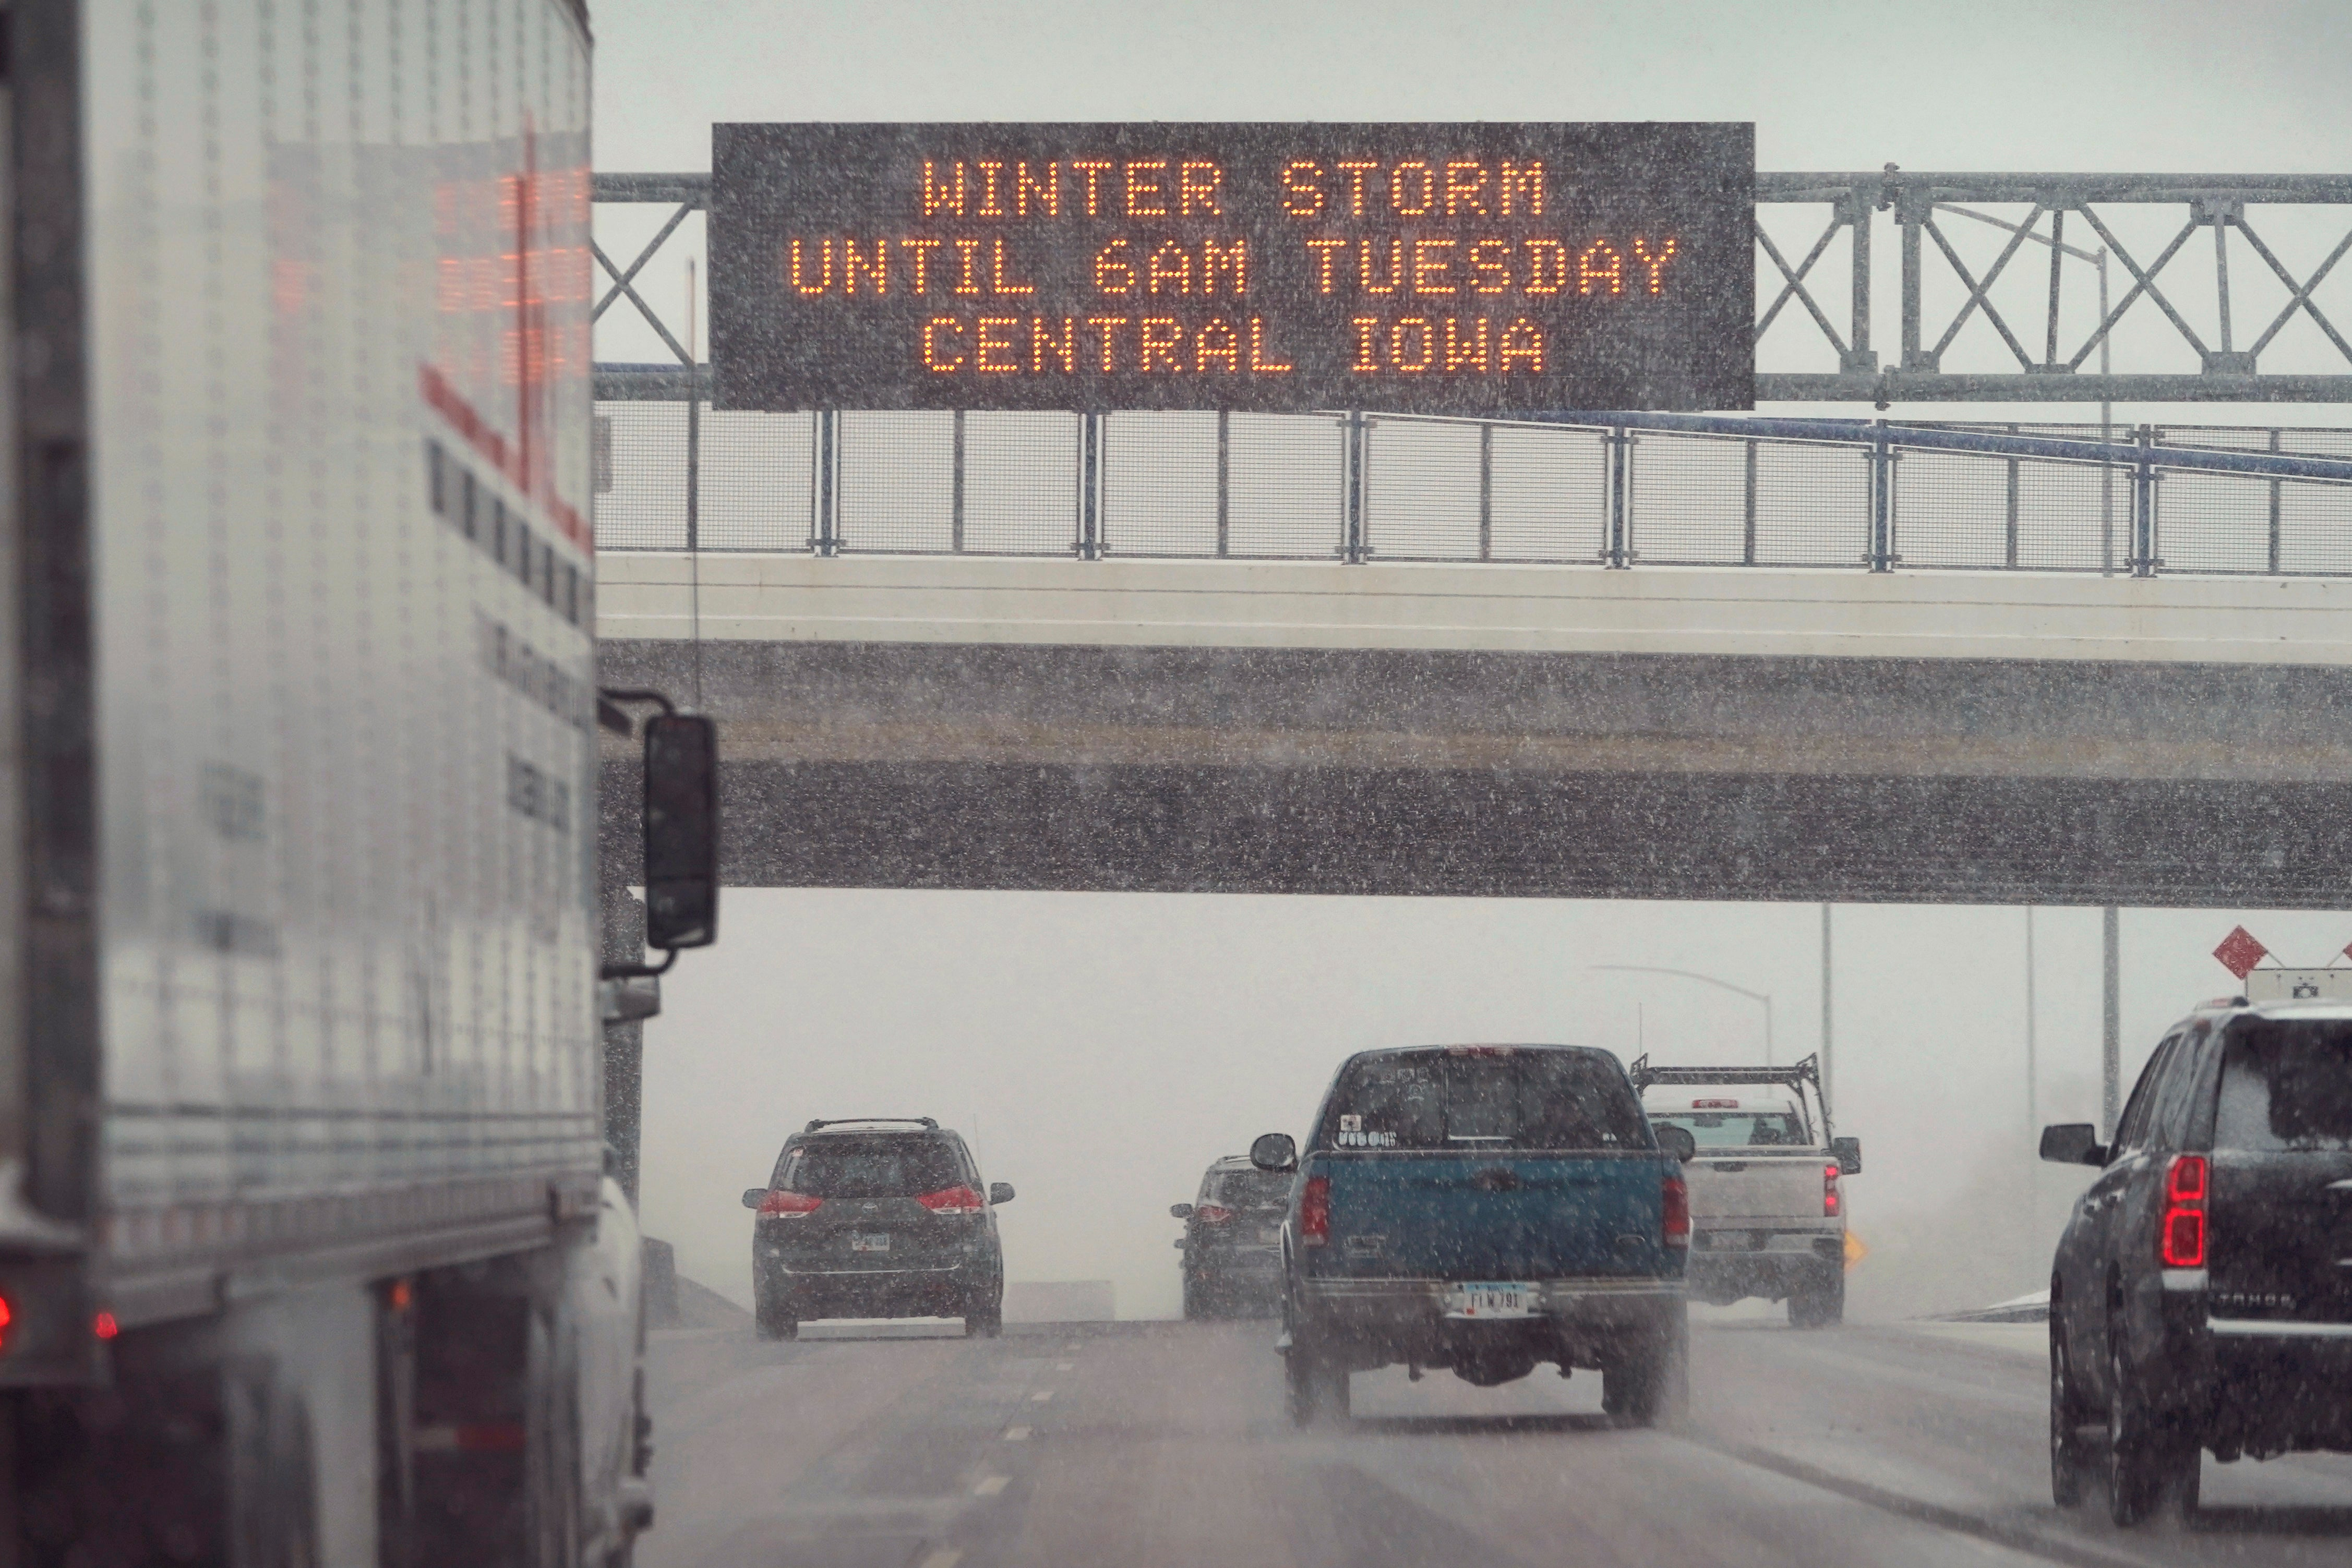 Winter Storm Brings Travel Headaches to the Plains (PHOTOS) | The Weather Channel - Articles from The Weather Channel | weather.com